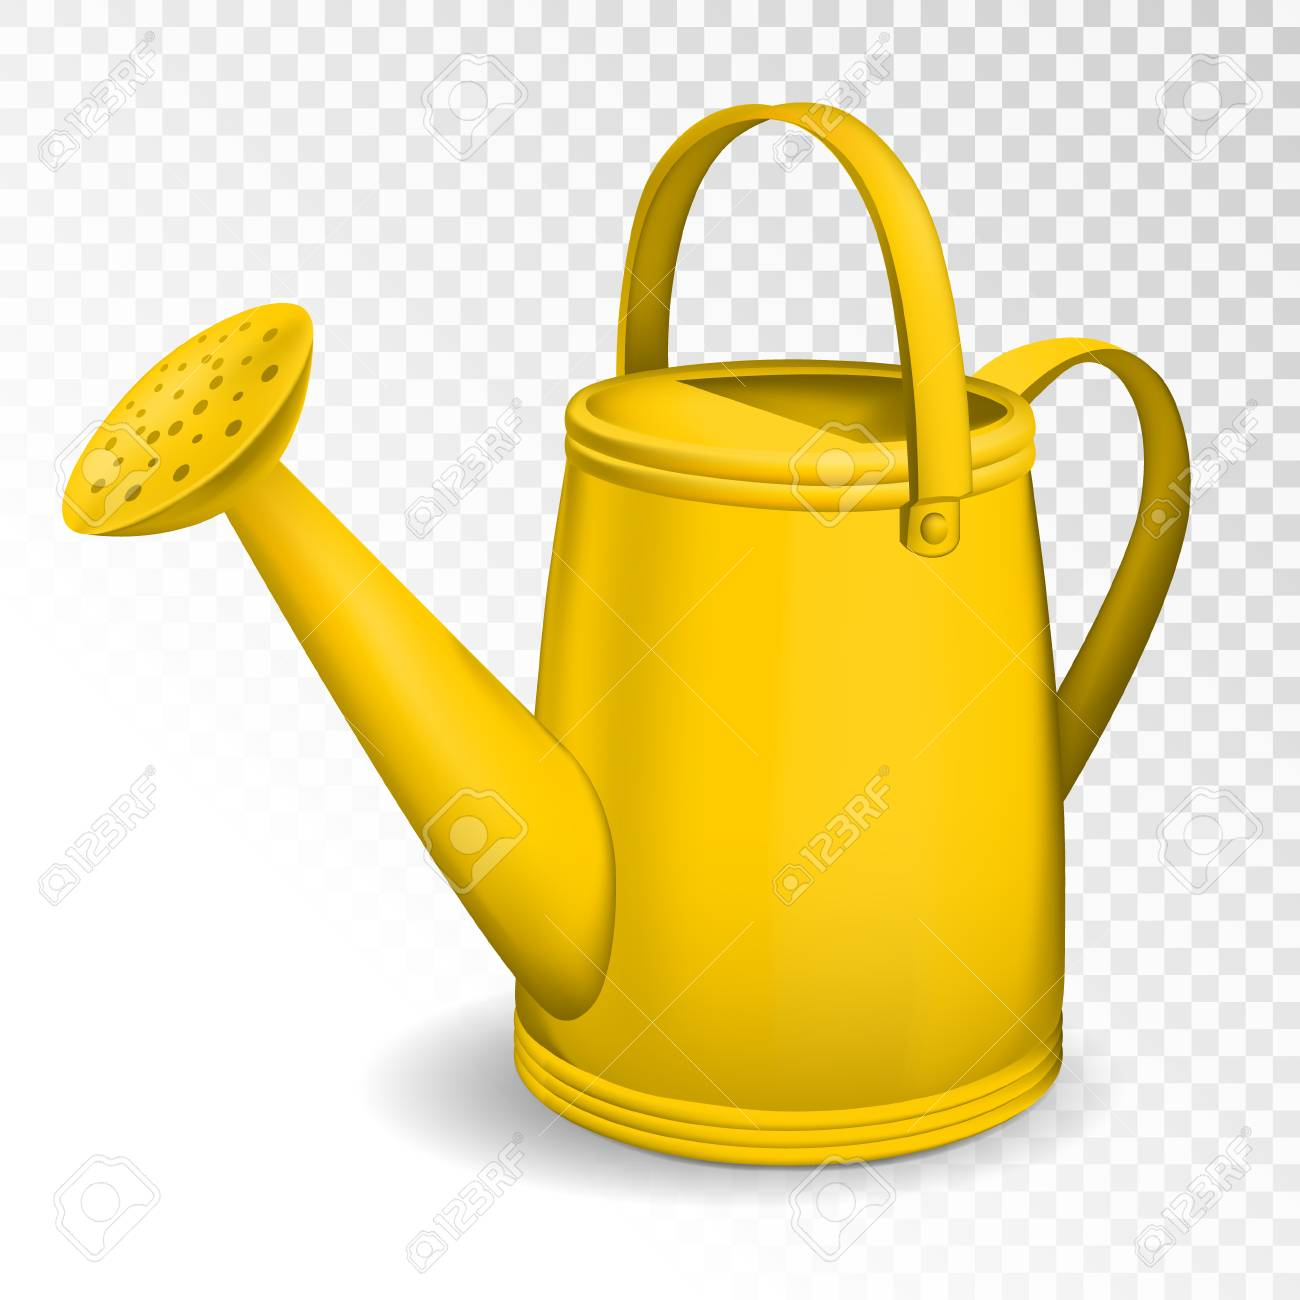 Watering Can Clipart Transparent.